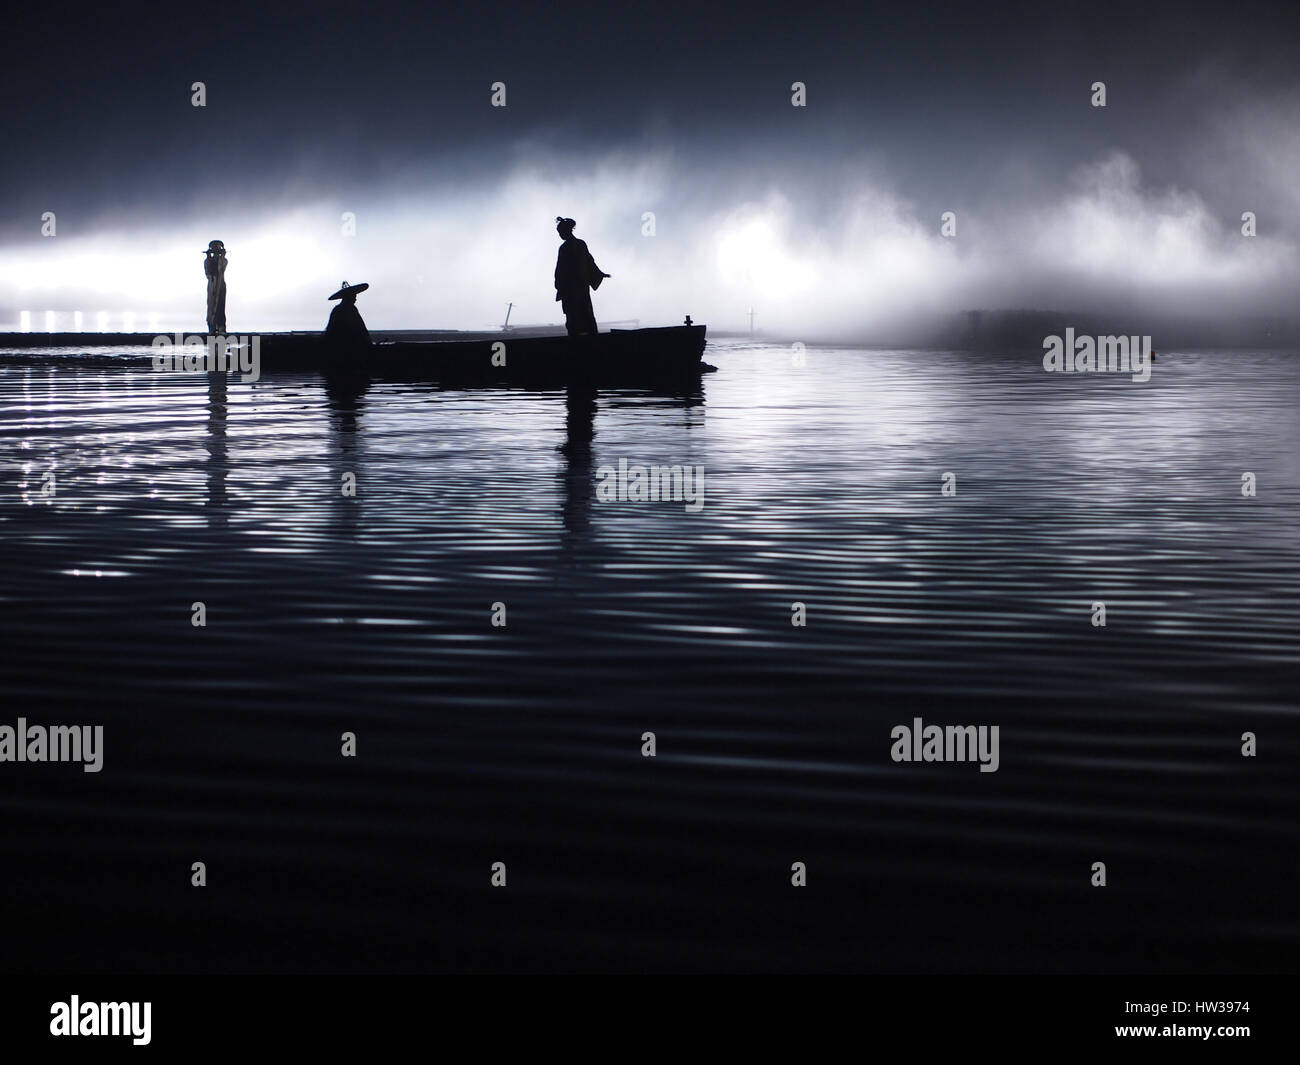 Sunset, twilight - Boat with asian people - Ocean, river landscape - Hanzhong, Shaanxi, China - Stock Image